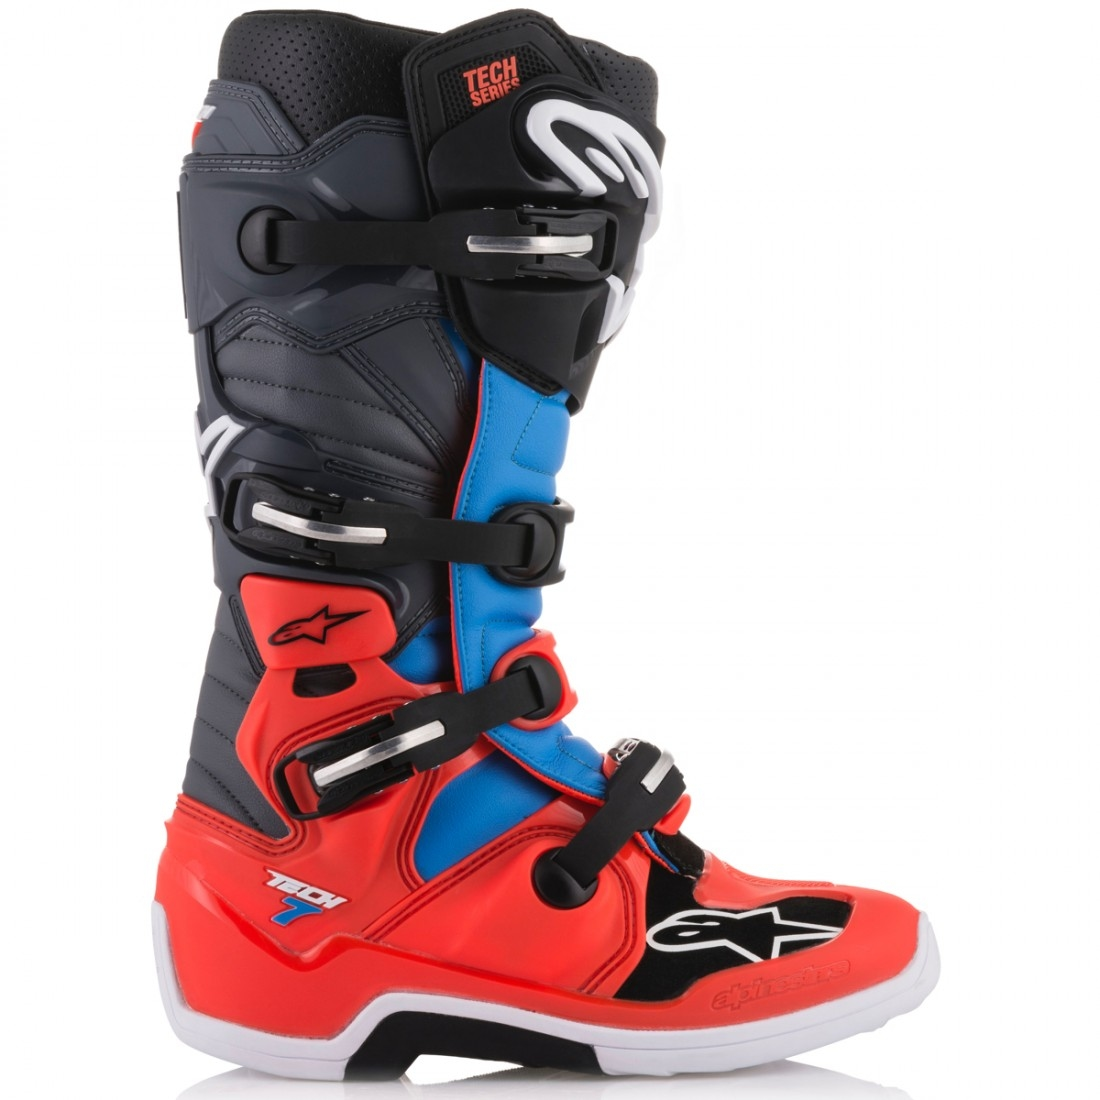 bottes alpinestars tech 7 red fluo cyan gray black motocard. Black Bedroom Furniture Sets. Home Design Ideas